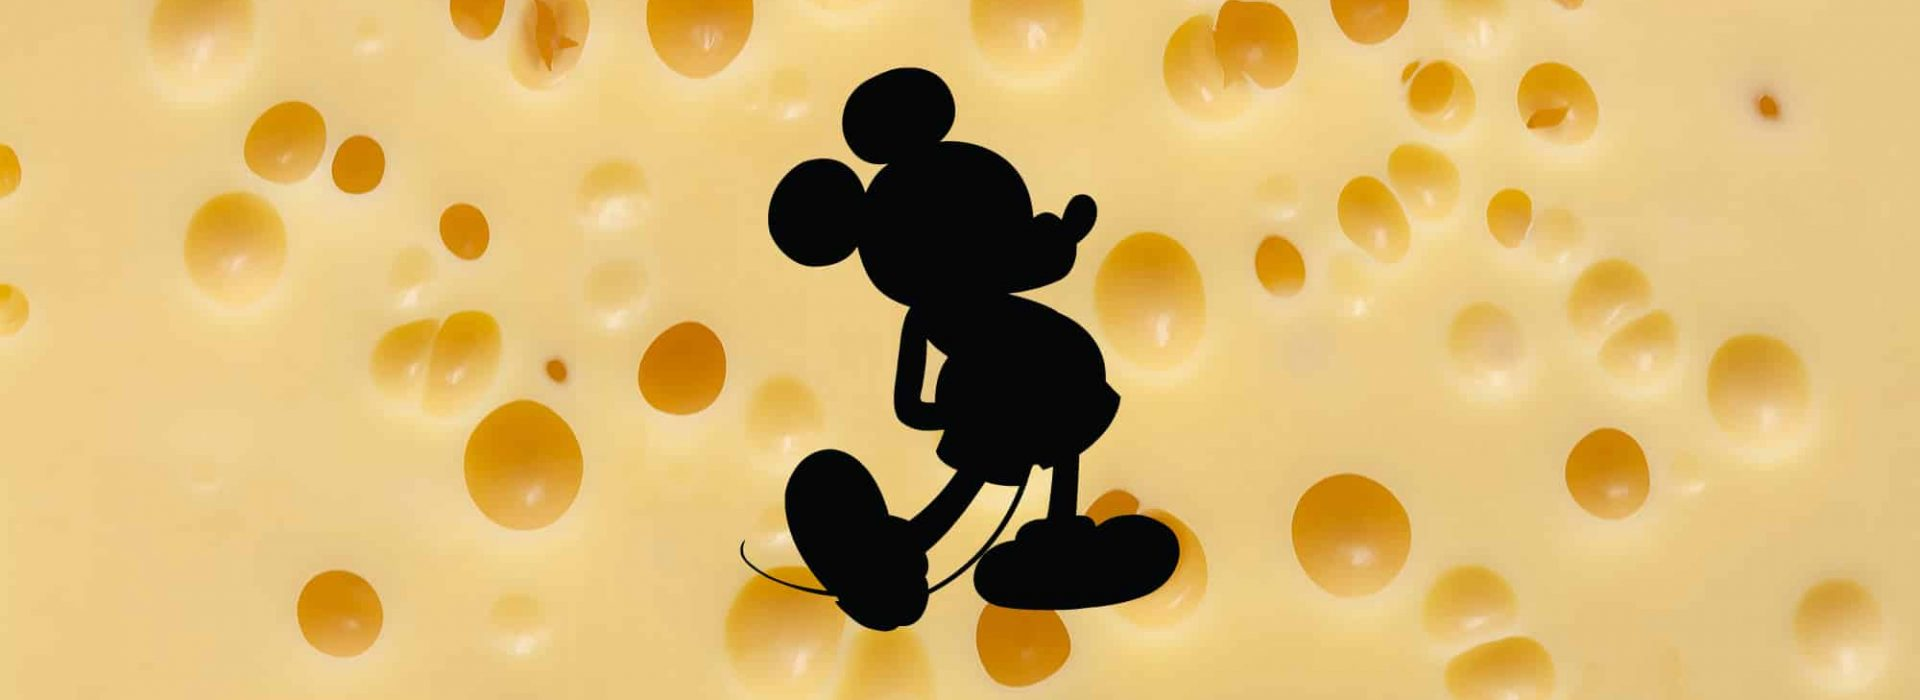 Mickey Mouse Cheese Desserts Blog Image. Image du Blog Mickey Mouse et Desserts au Fromage.